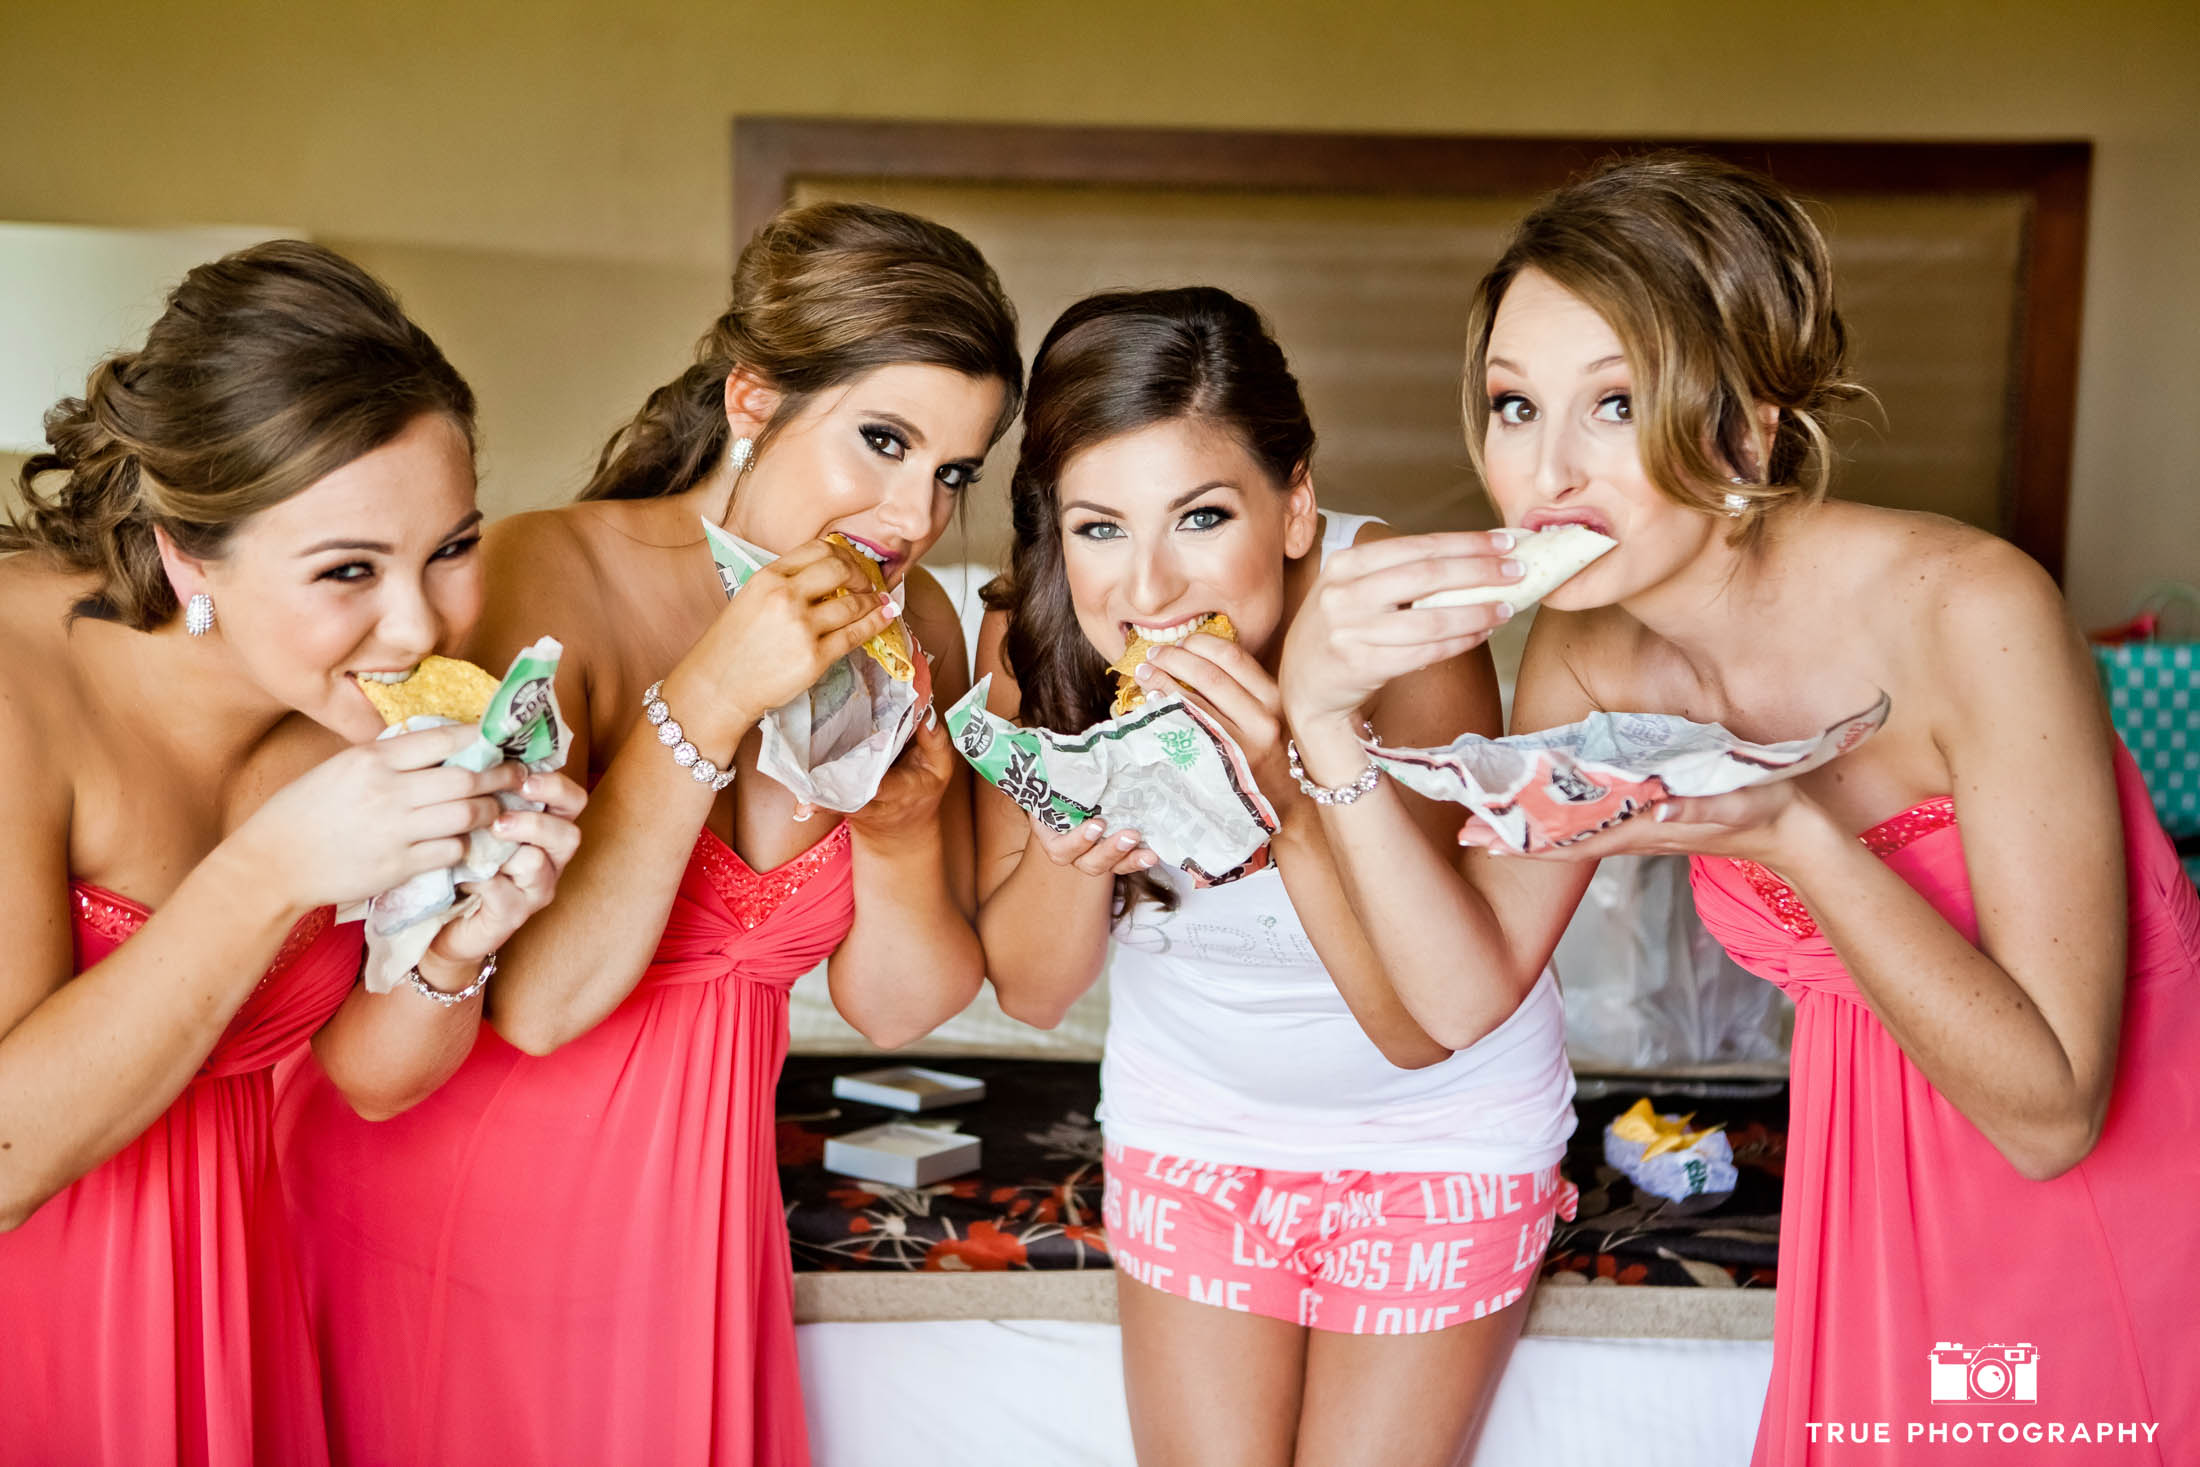 Bride and bridesmaids grab a bite of del taco before putting on the wedding dress